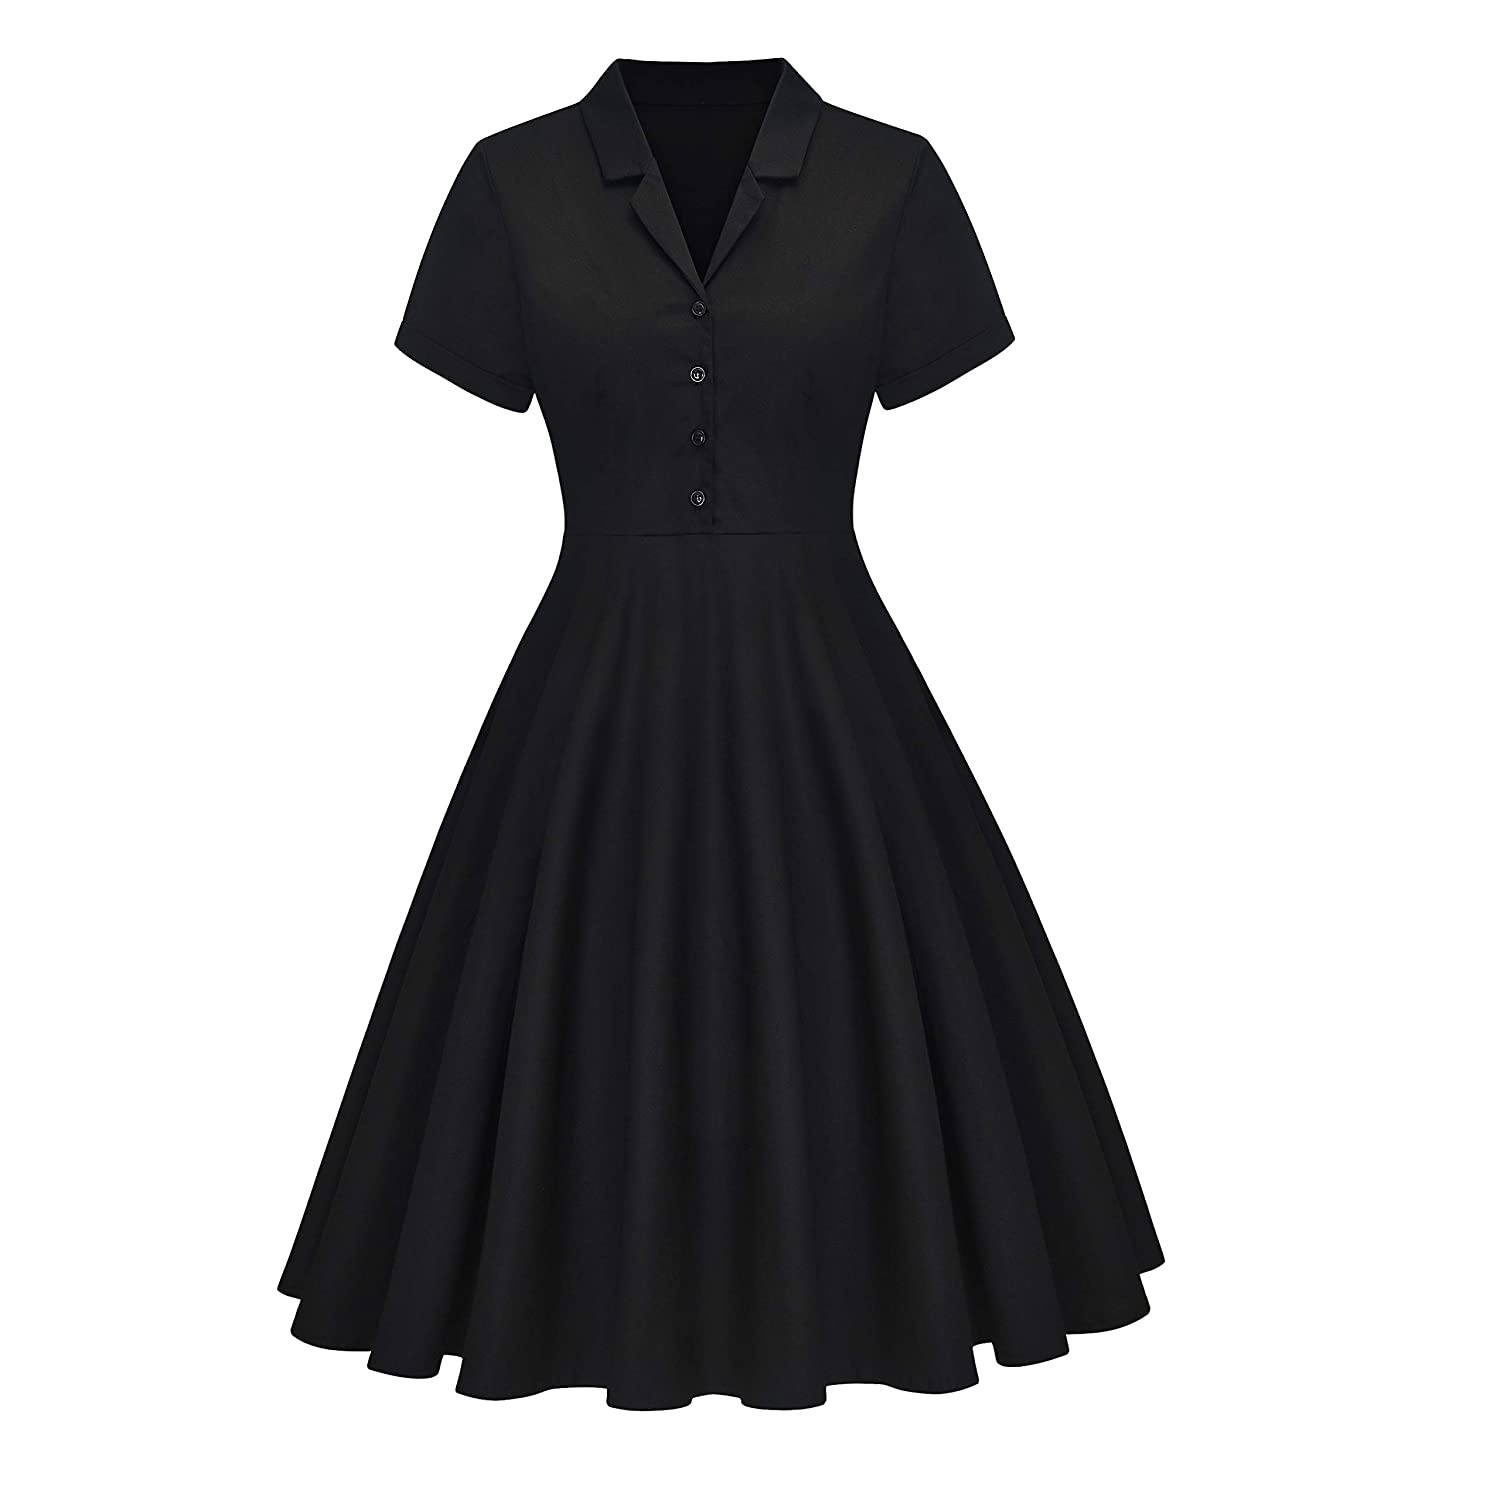 Vintage 50s Dresses: Best 1950s Dress Styles Yarn & Ink Womens 1950s Vintage Dress Cocktail Party Dress with Short Sleeves with Two Pockets $39.99 AT vintagedancer.com